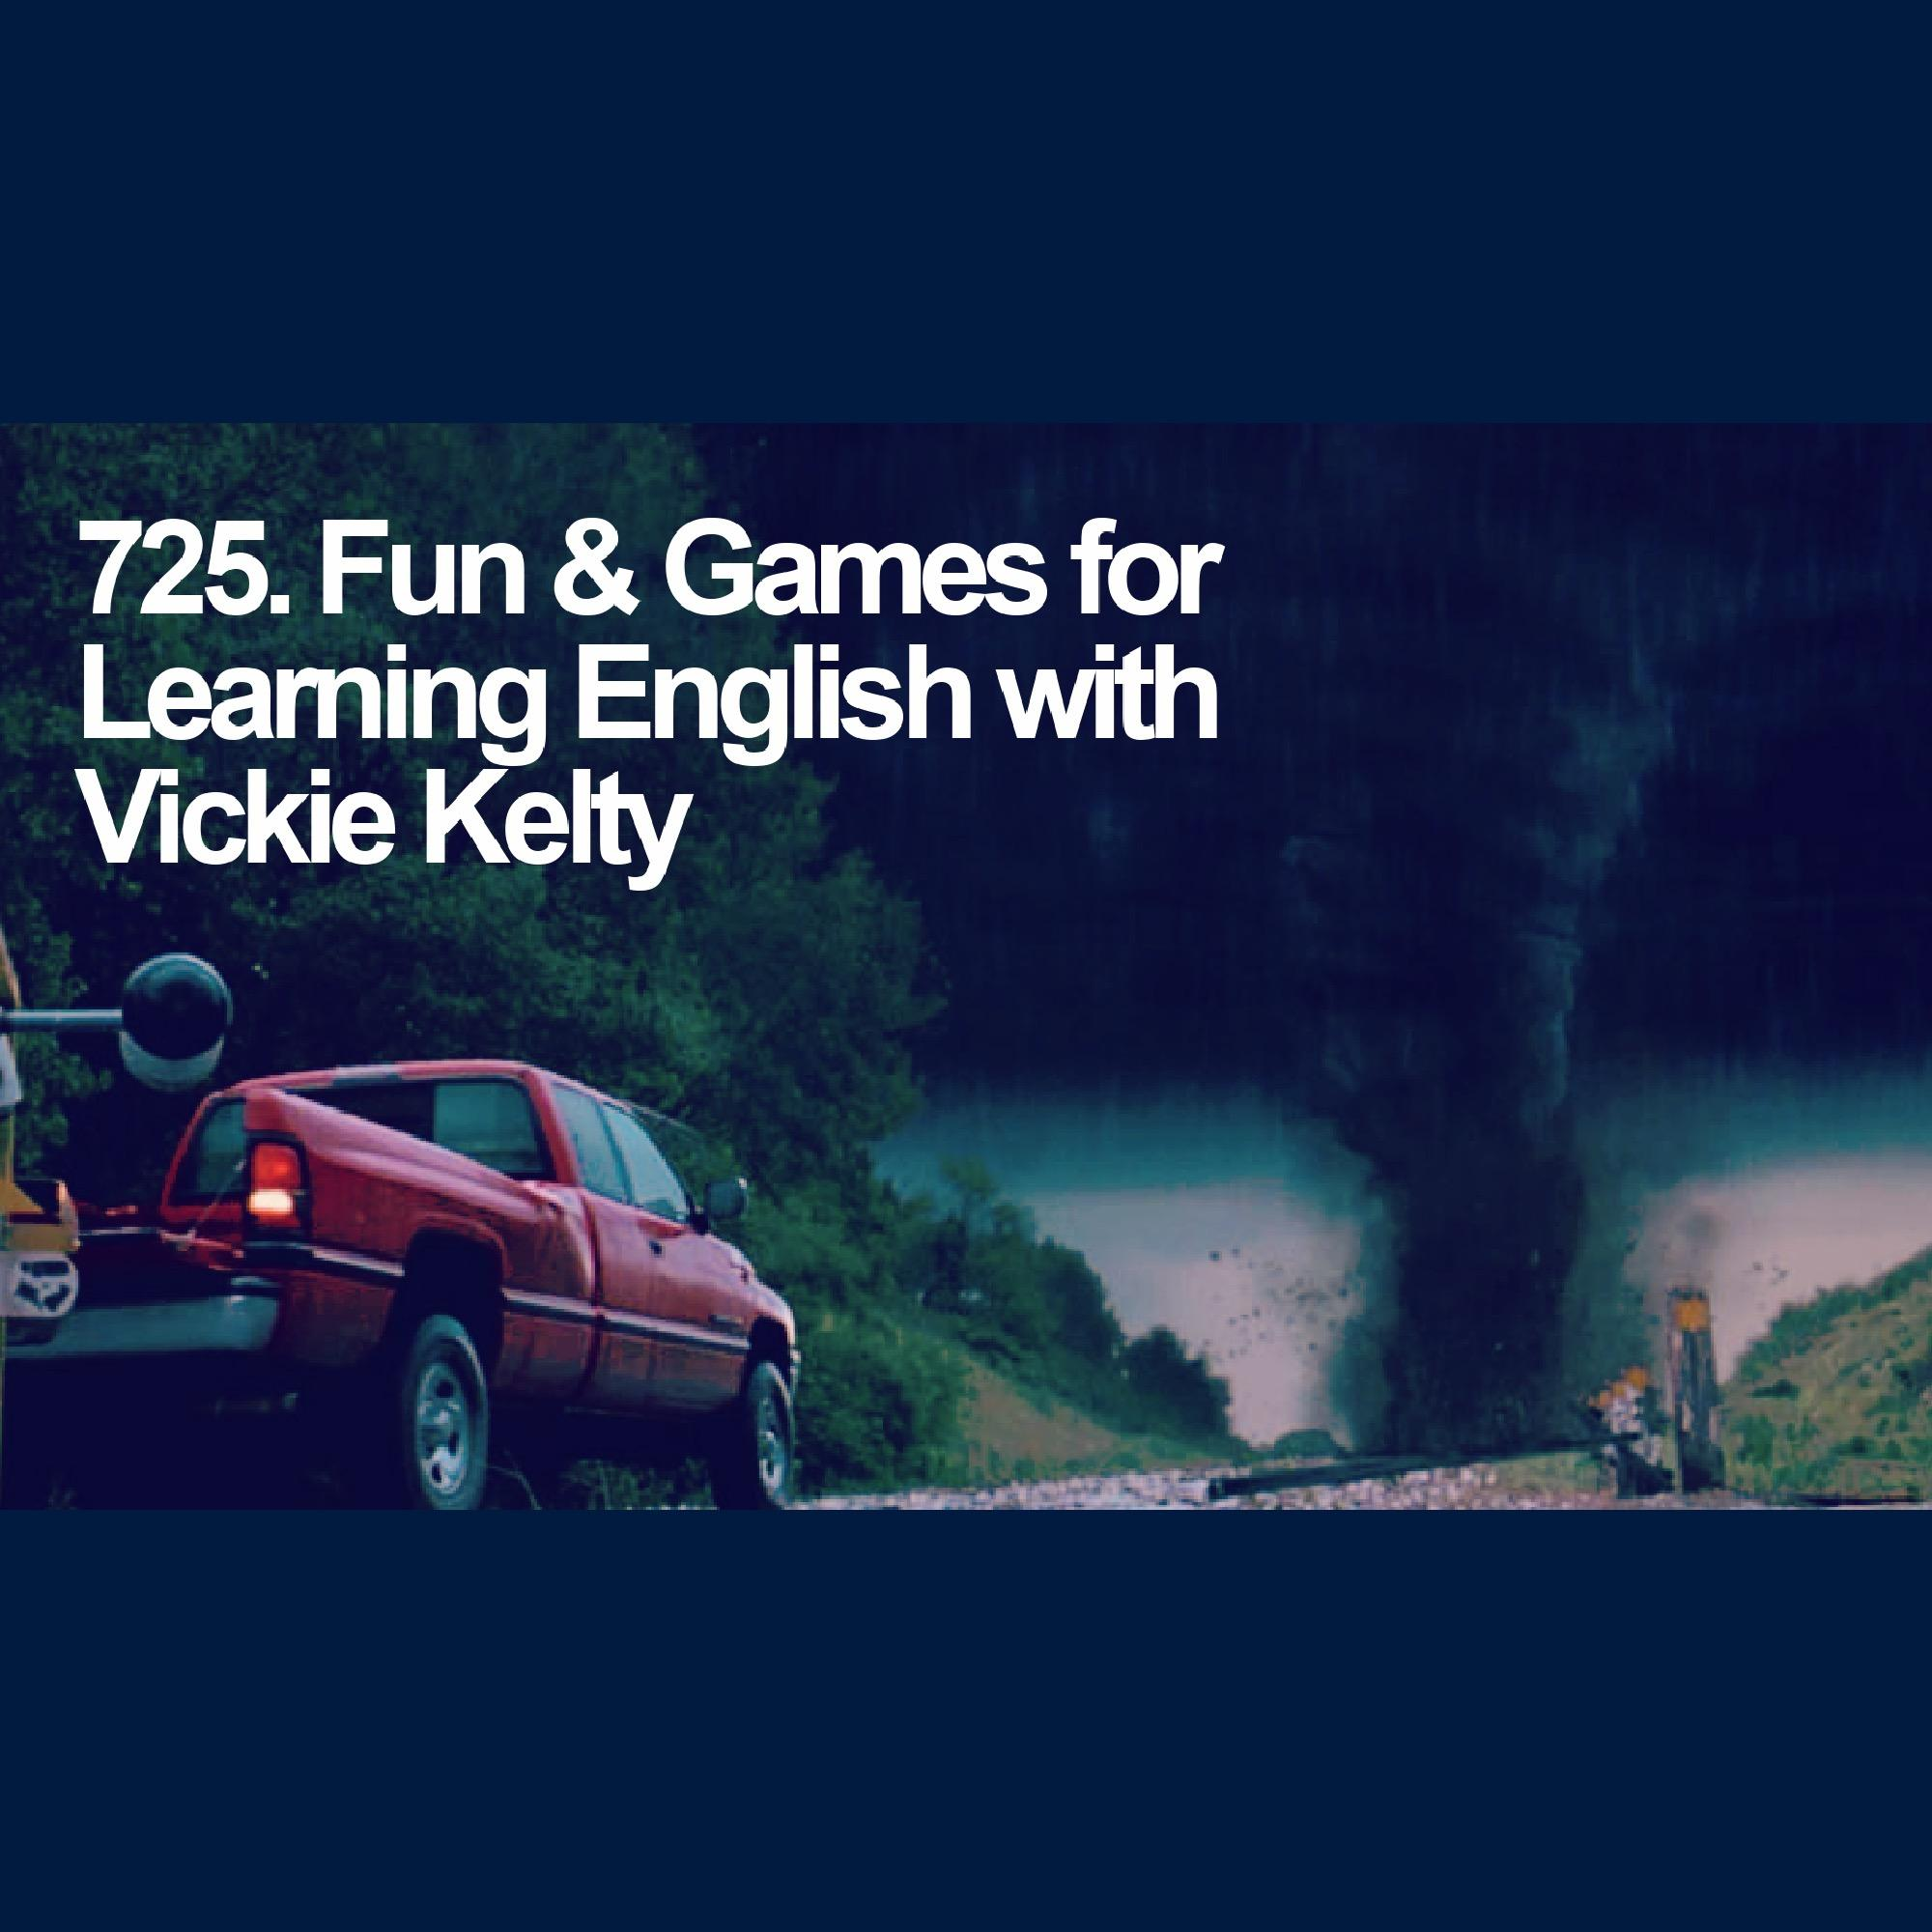 725. Fun & Games for Learning English with Vickie Kelty